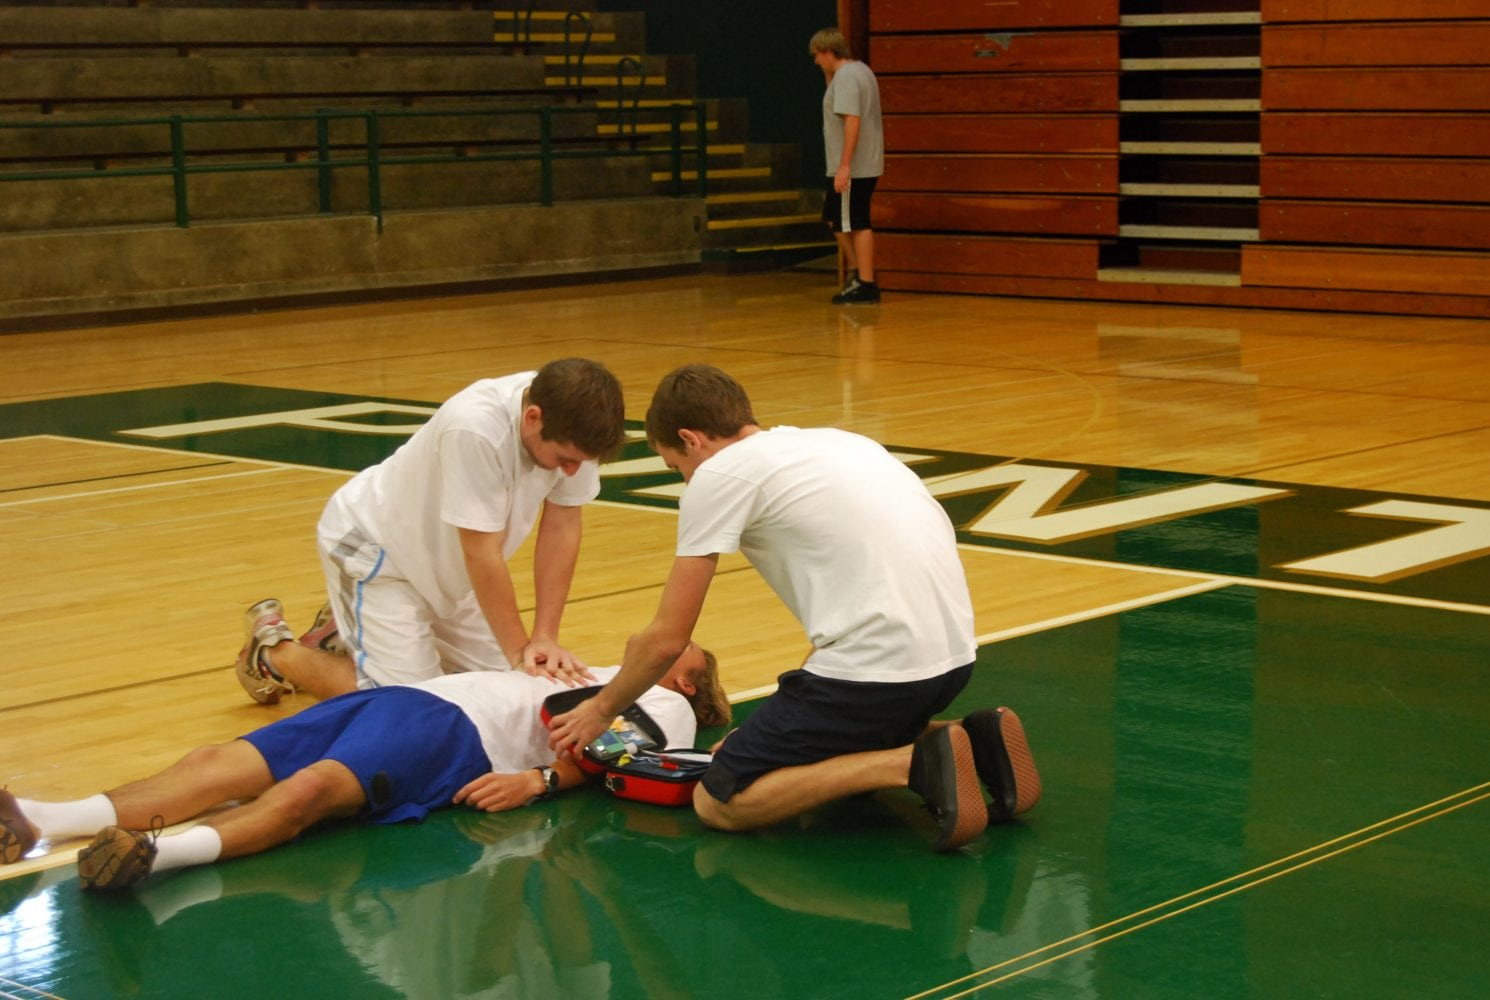 Learn How You Can Save A Life During CPR/AED Awareness Week